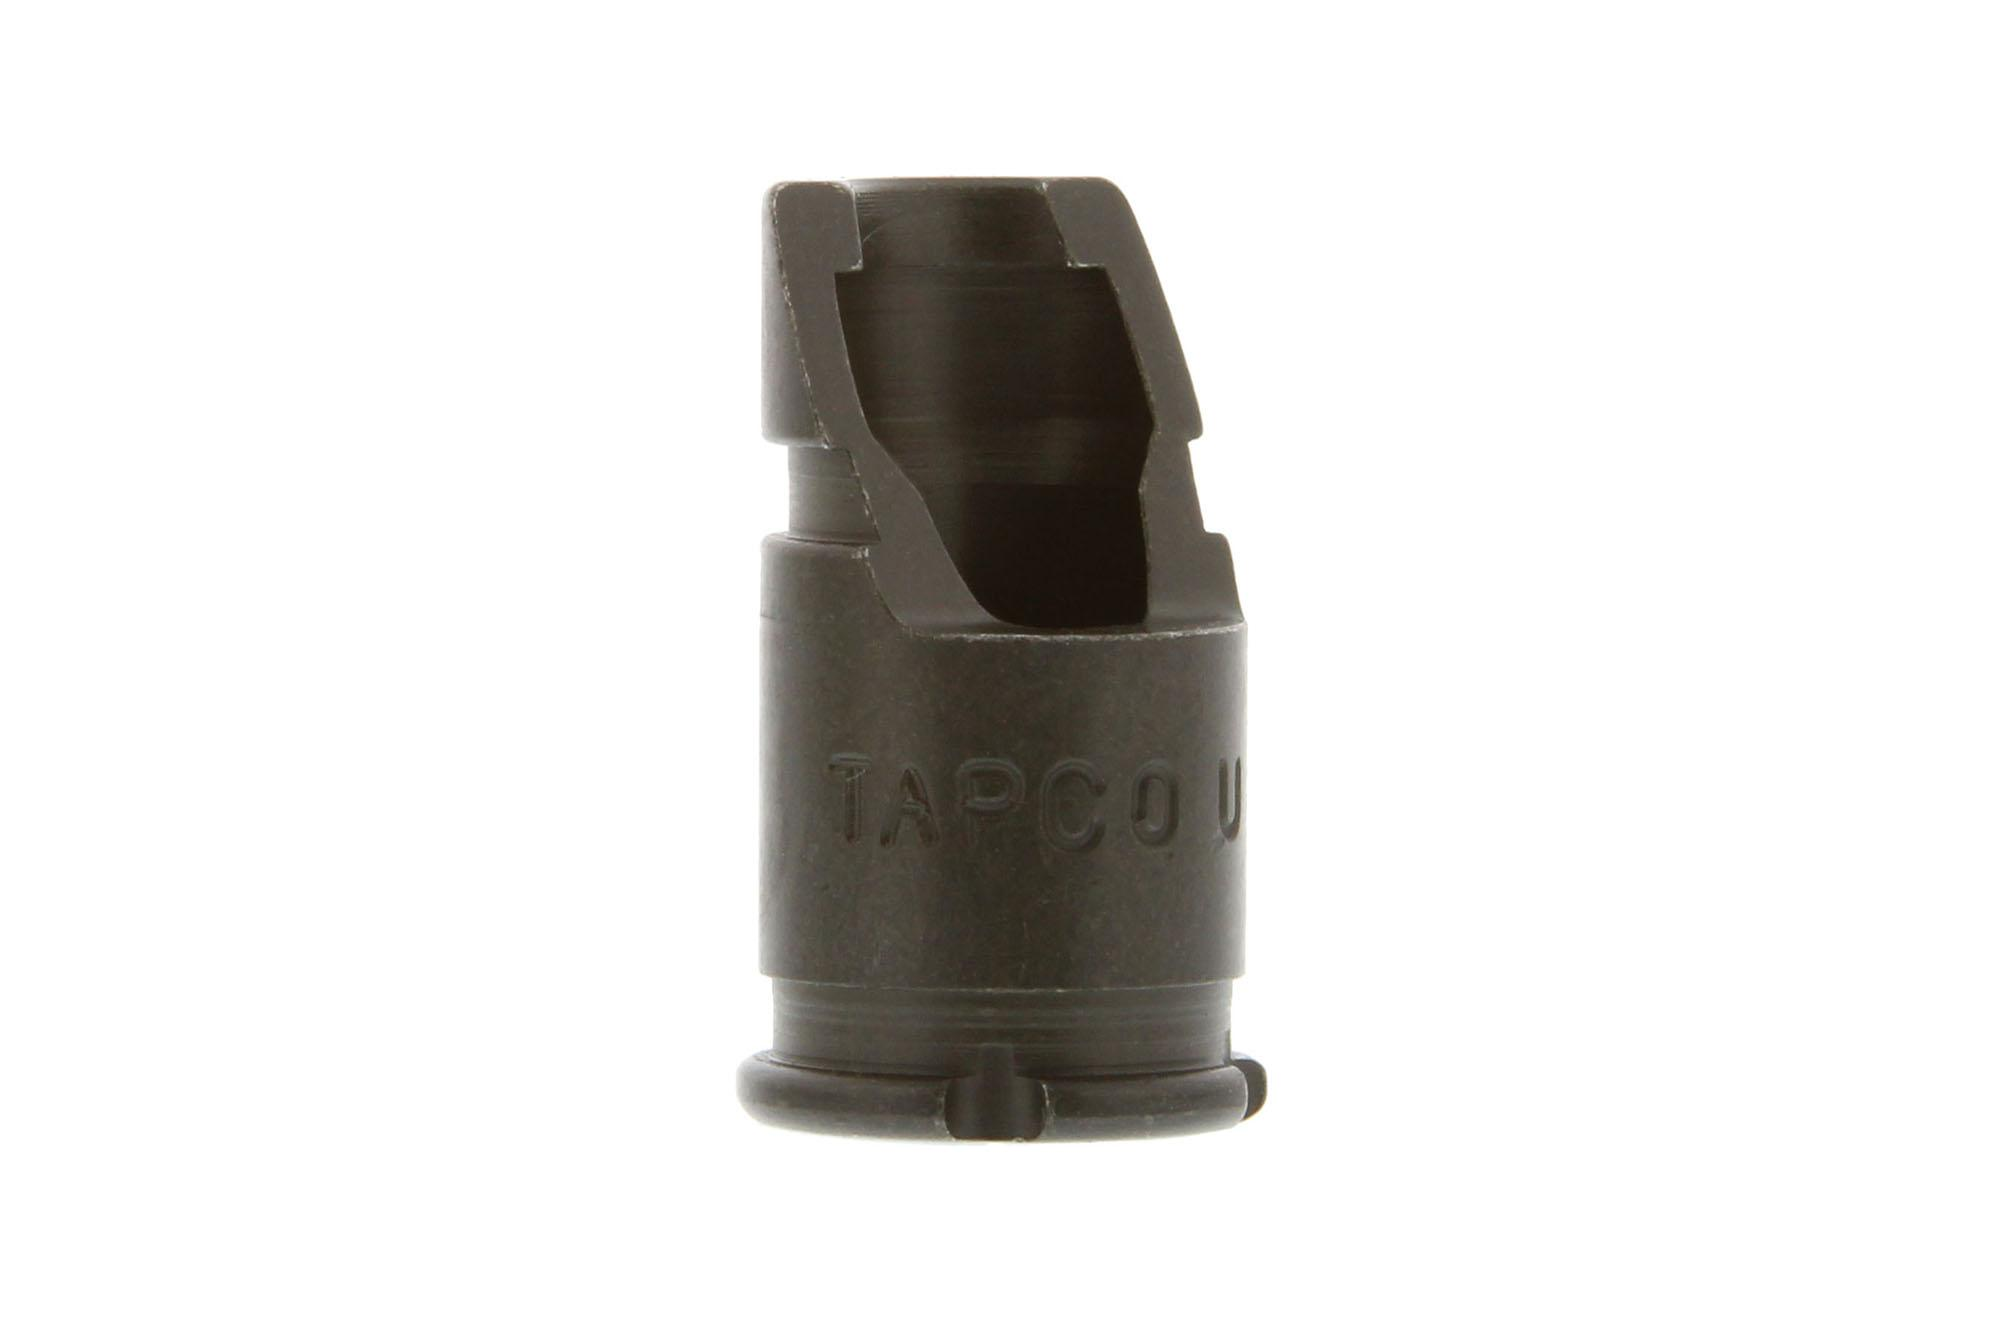 The Tapco AK-47 Slant muzzle brake 14x1 LH helps to reduce muzzle rise